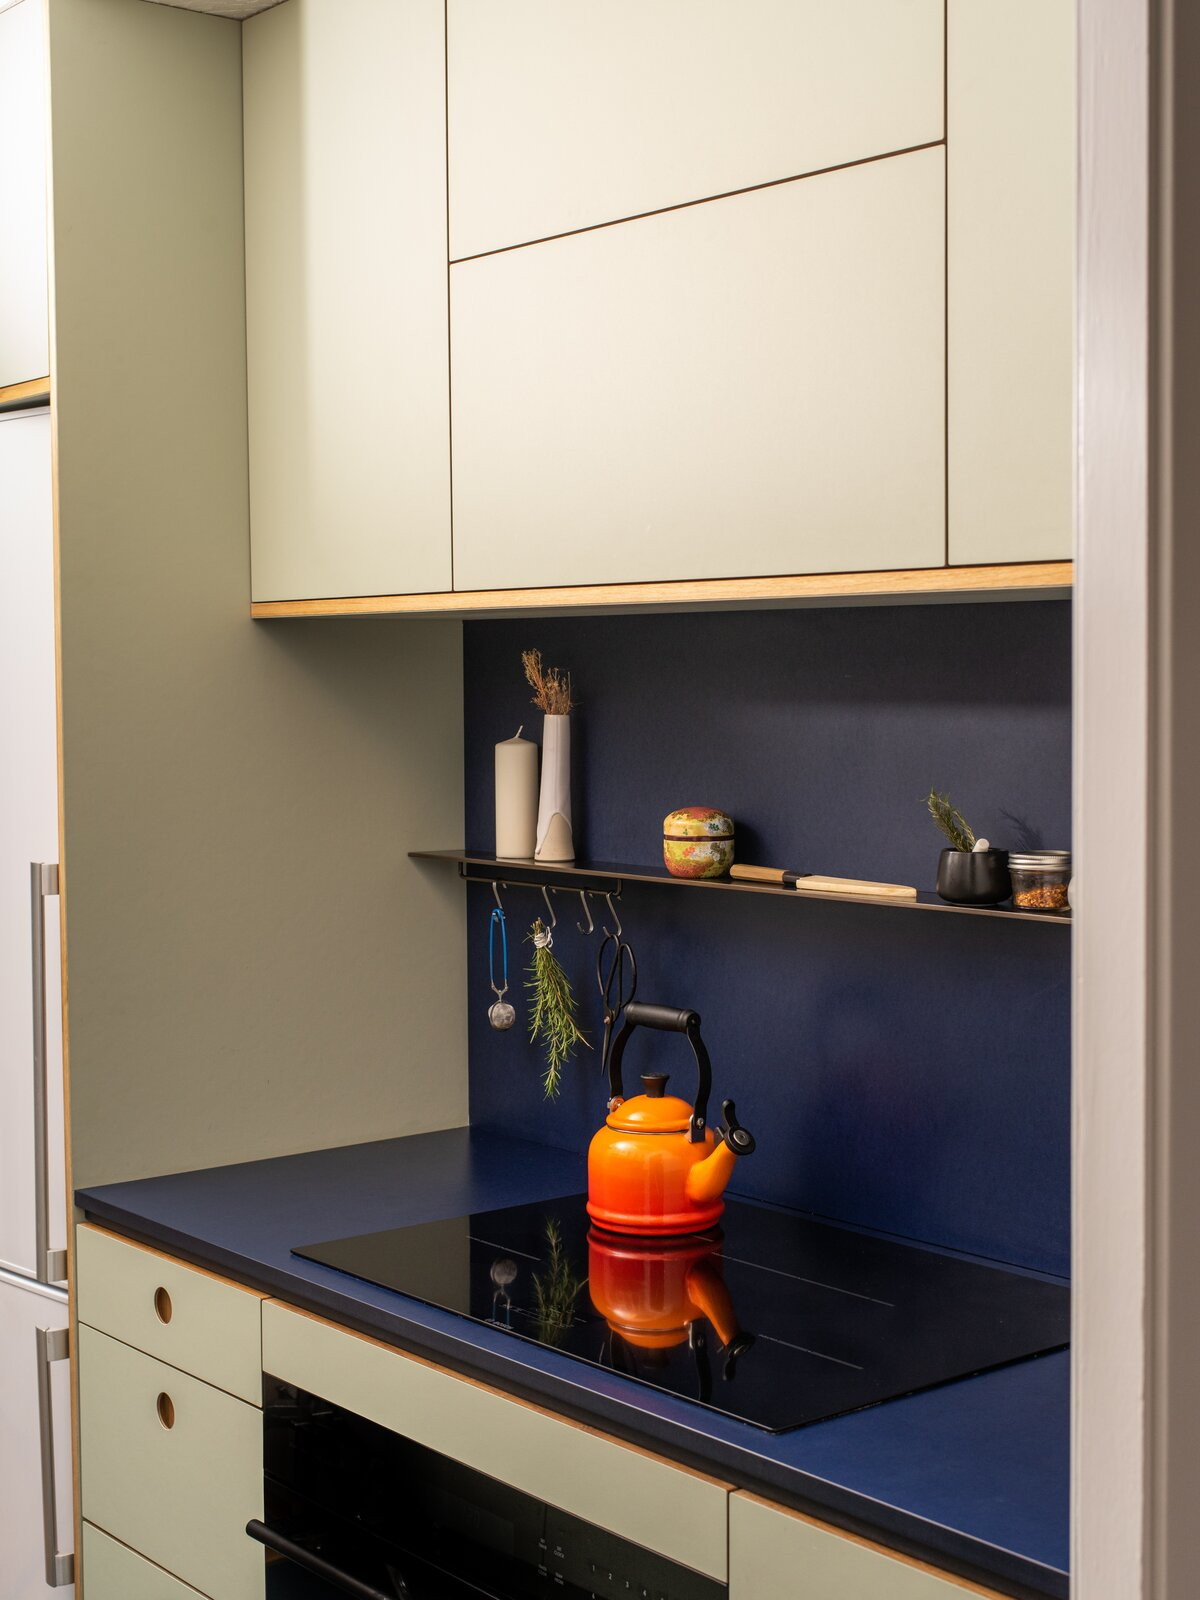 Raising the cabinet height and installing new color-blocked Richlite counters and full-height backsplash help the kitchen feel larger.